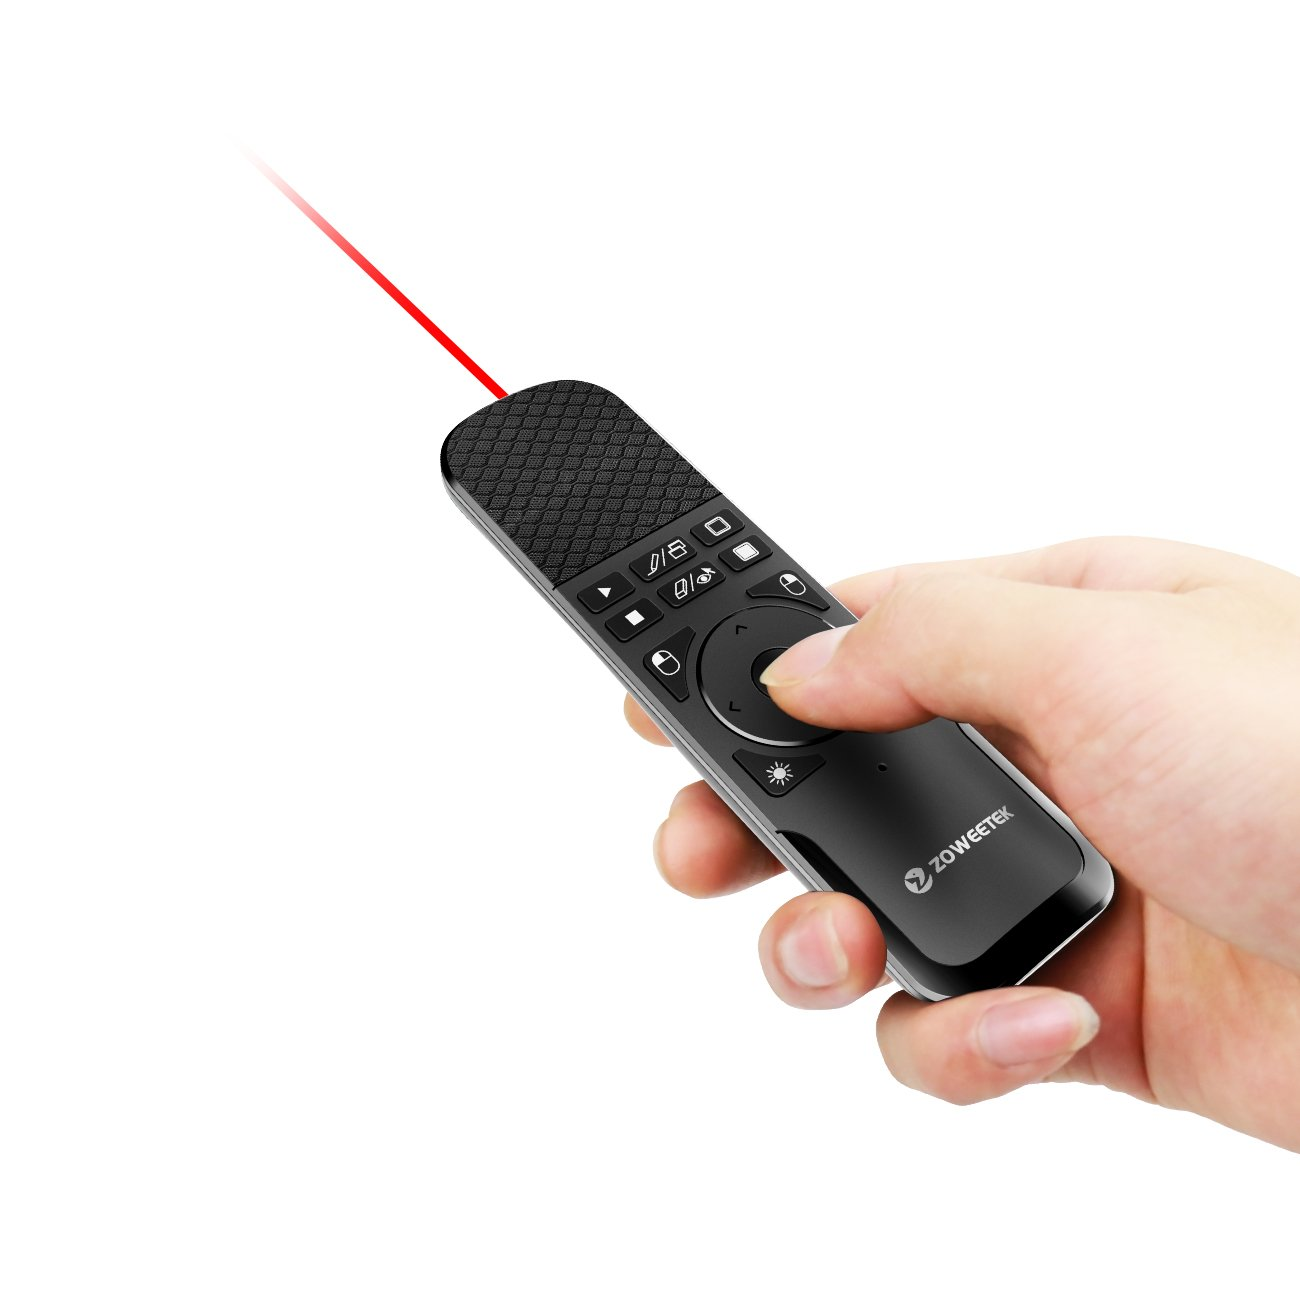 Zoweetek Wireless Presenter with Mouse Functions and Red Laser, 2.4GHz PowerPoint PPT Remote Control Clicker